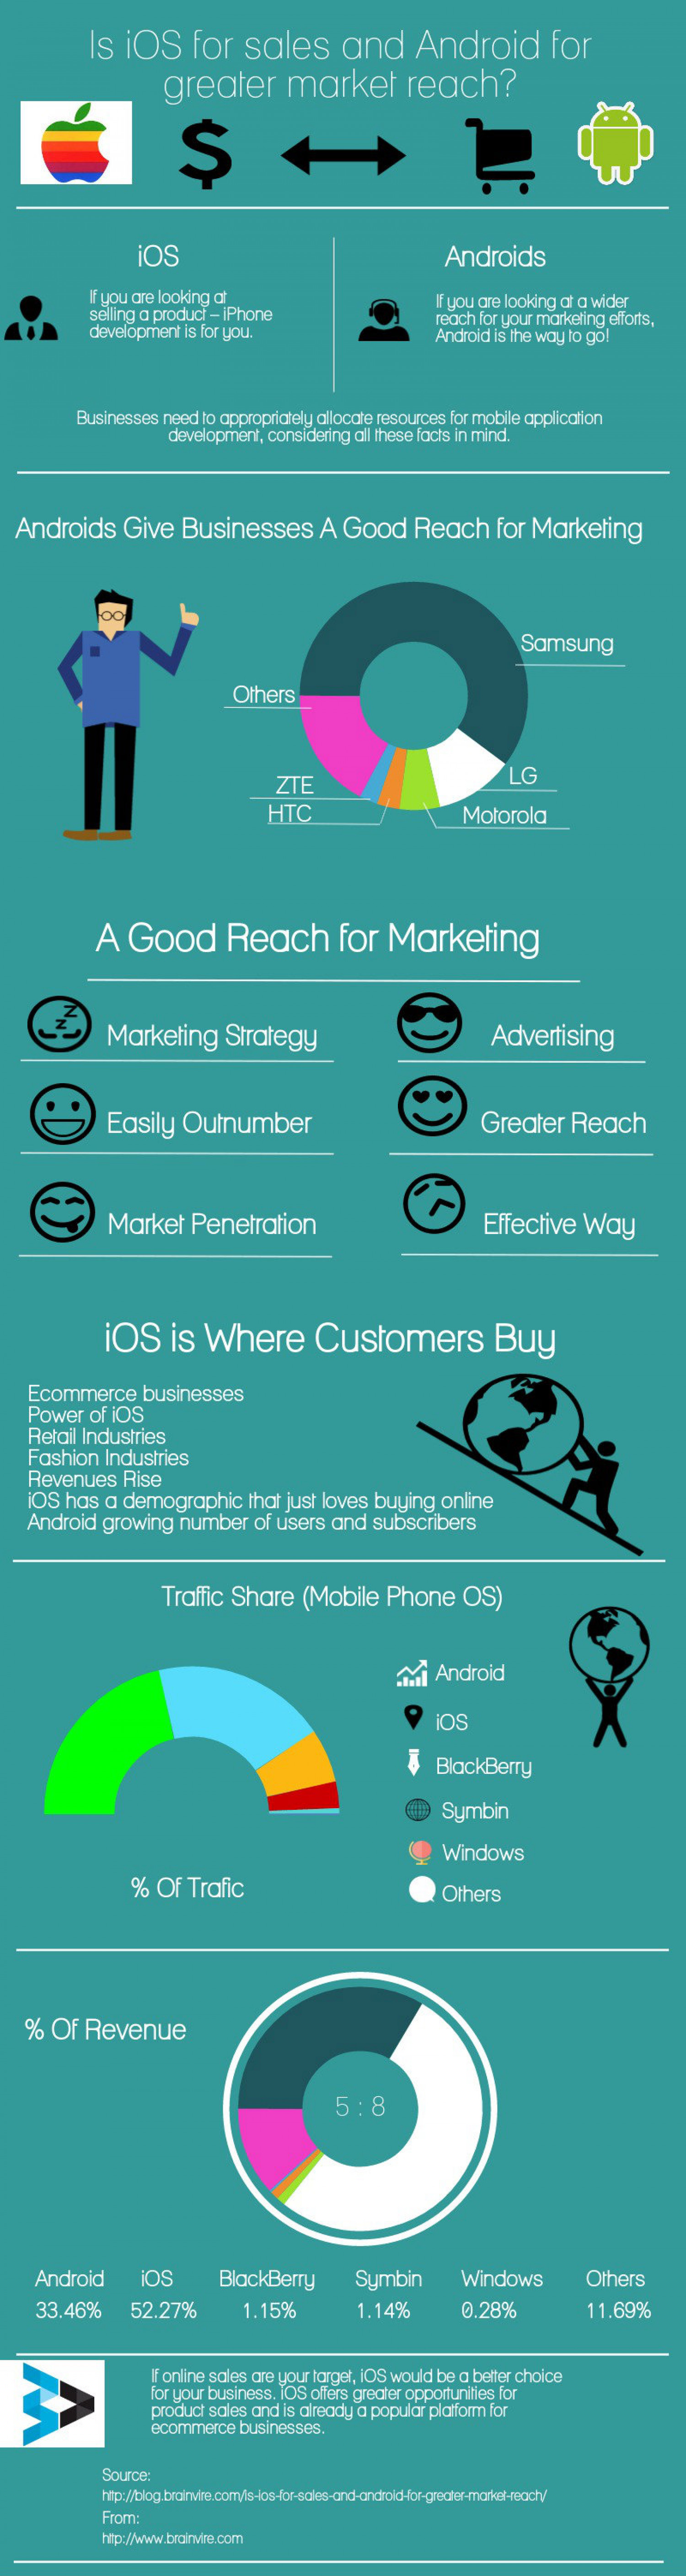 Is iOS For Sales and Android For Greater Market Reach? Infographic